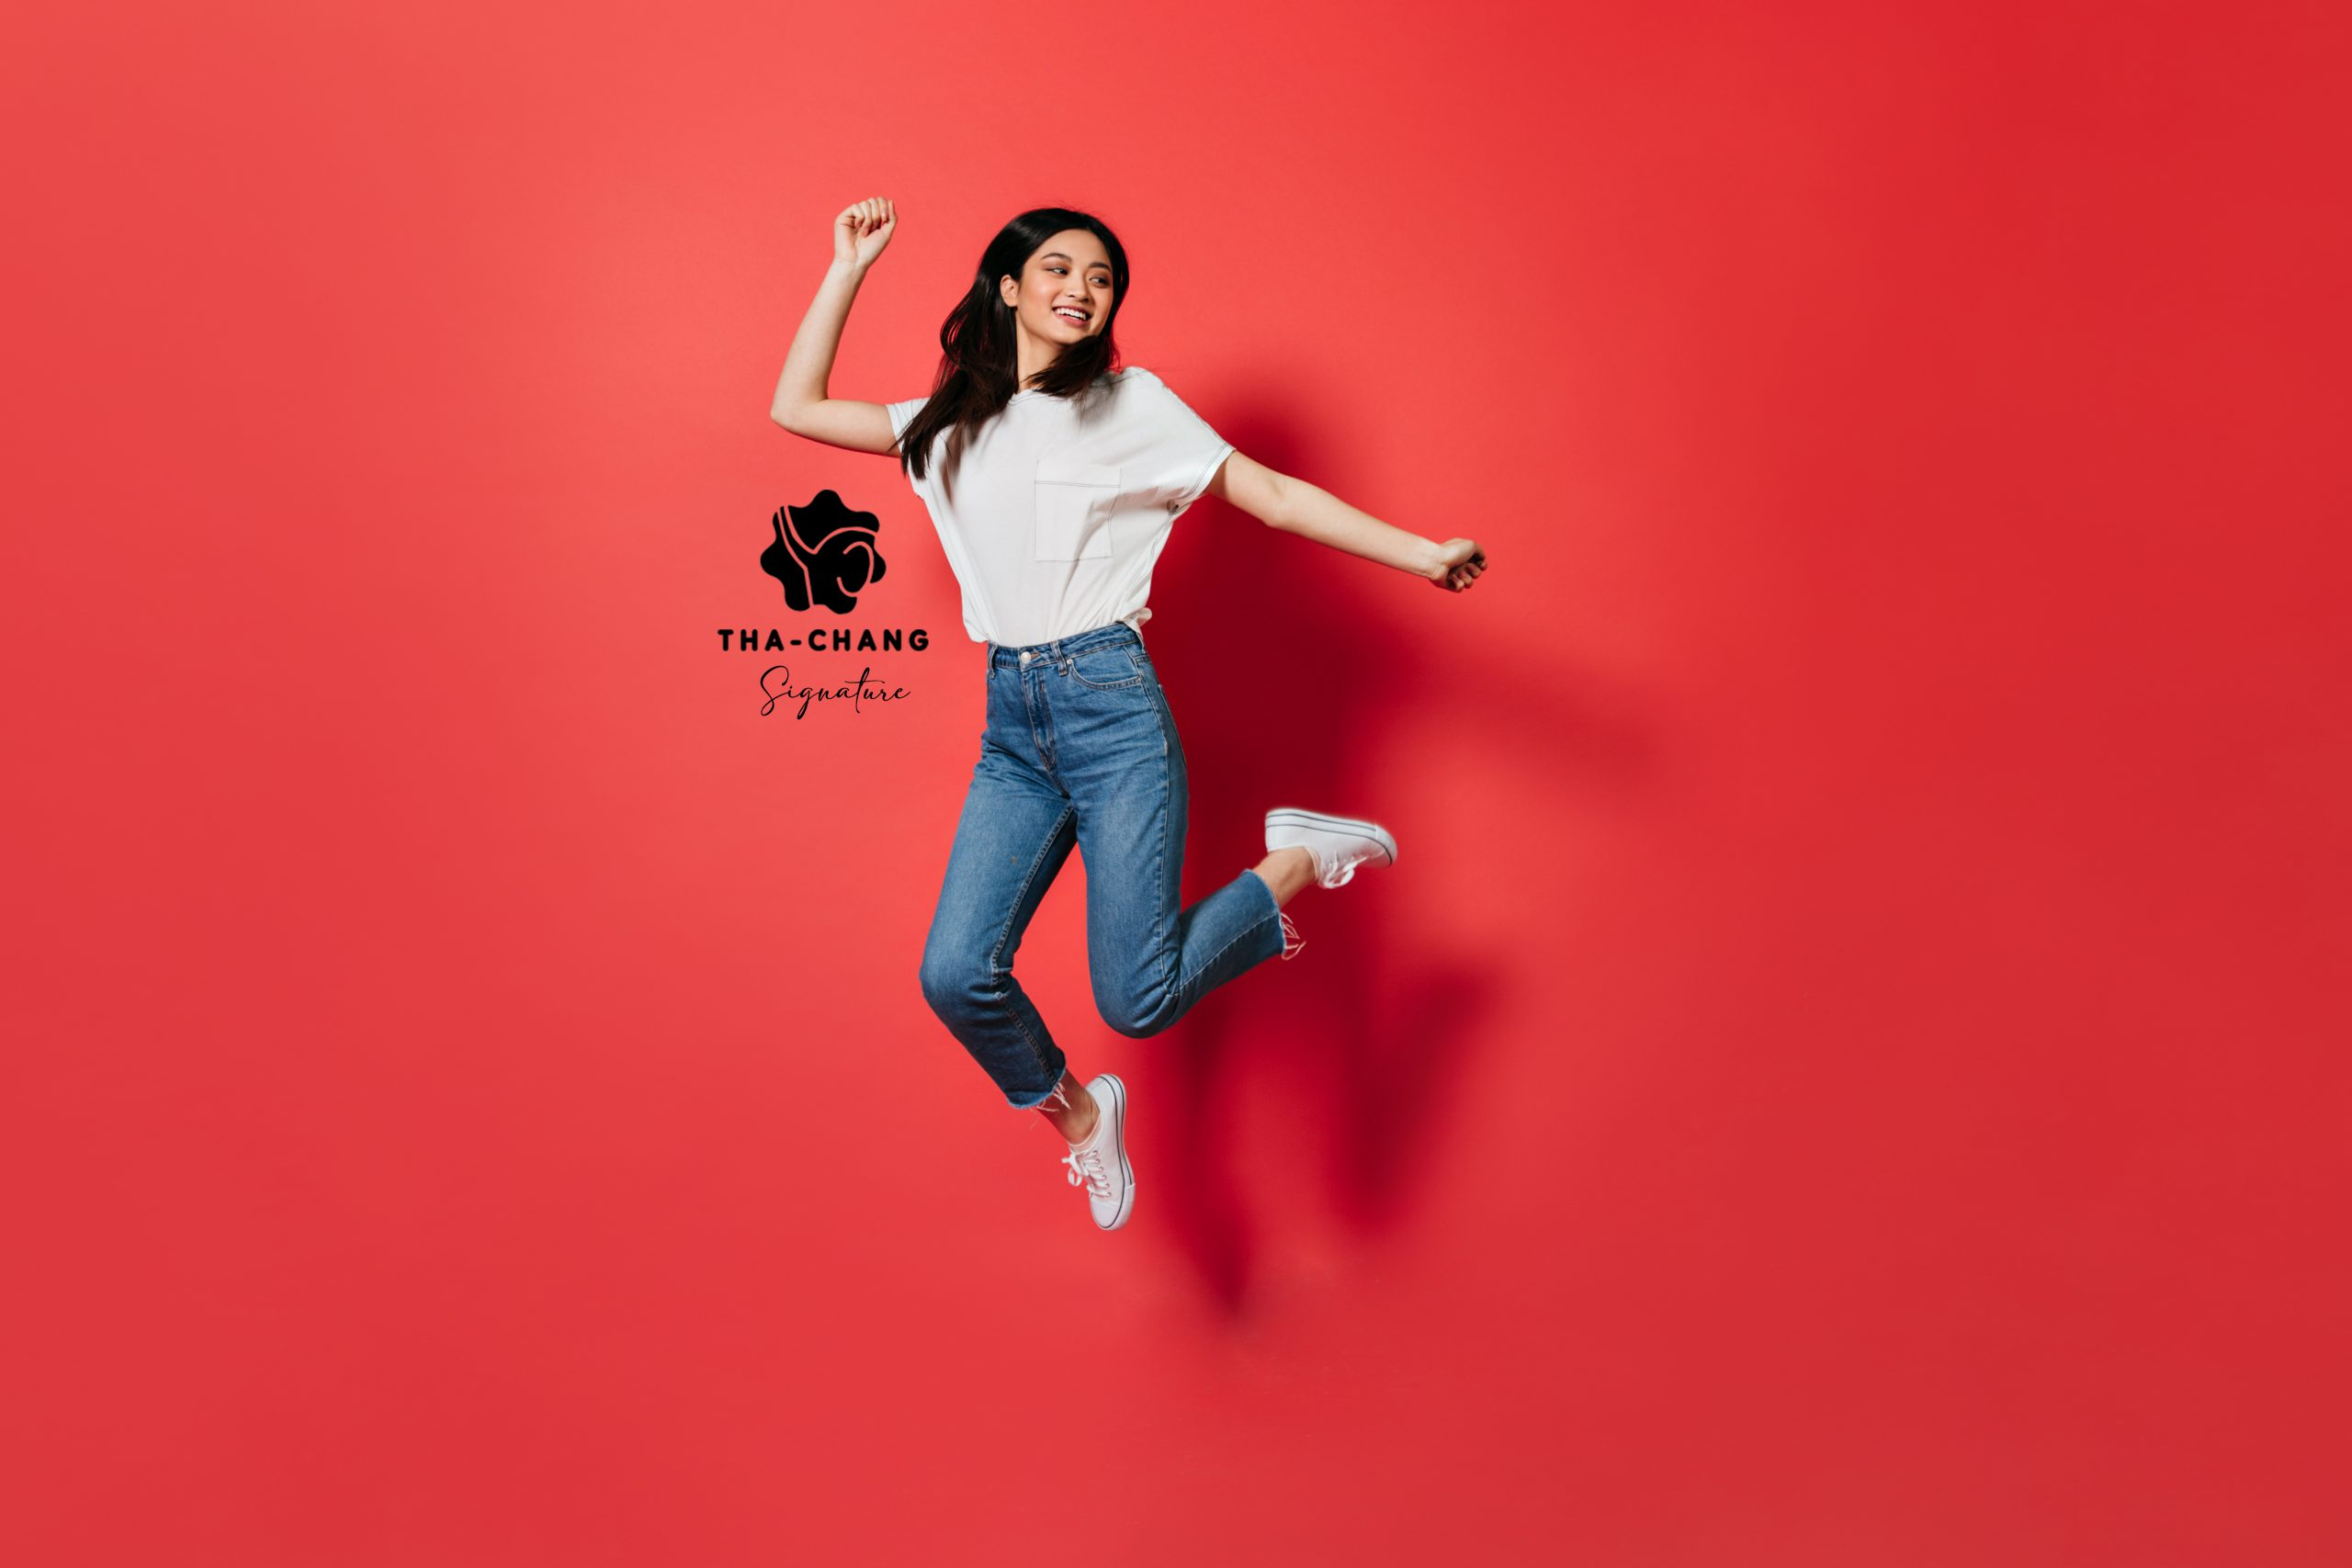 mischievous woman white t shirt jeans jumping red wall1 scaled